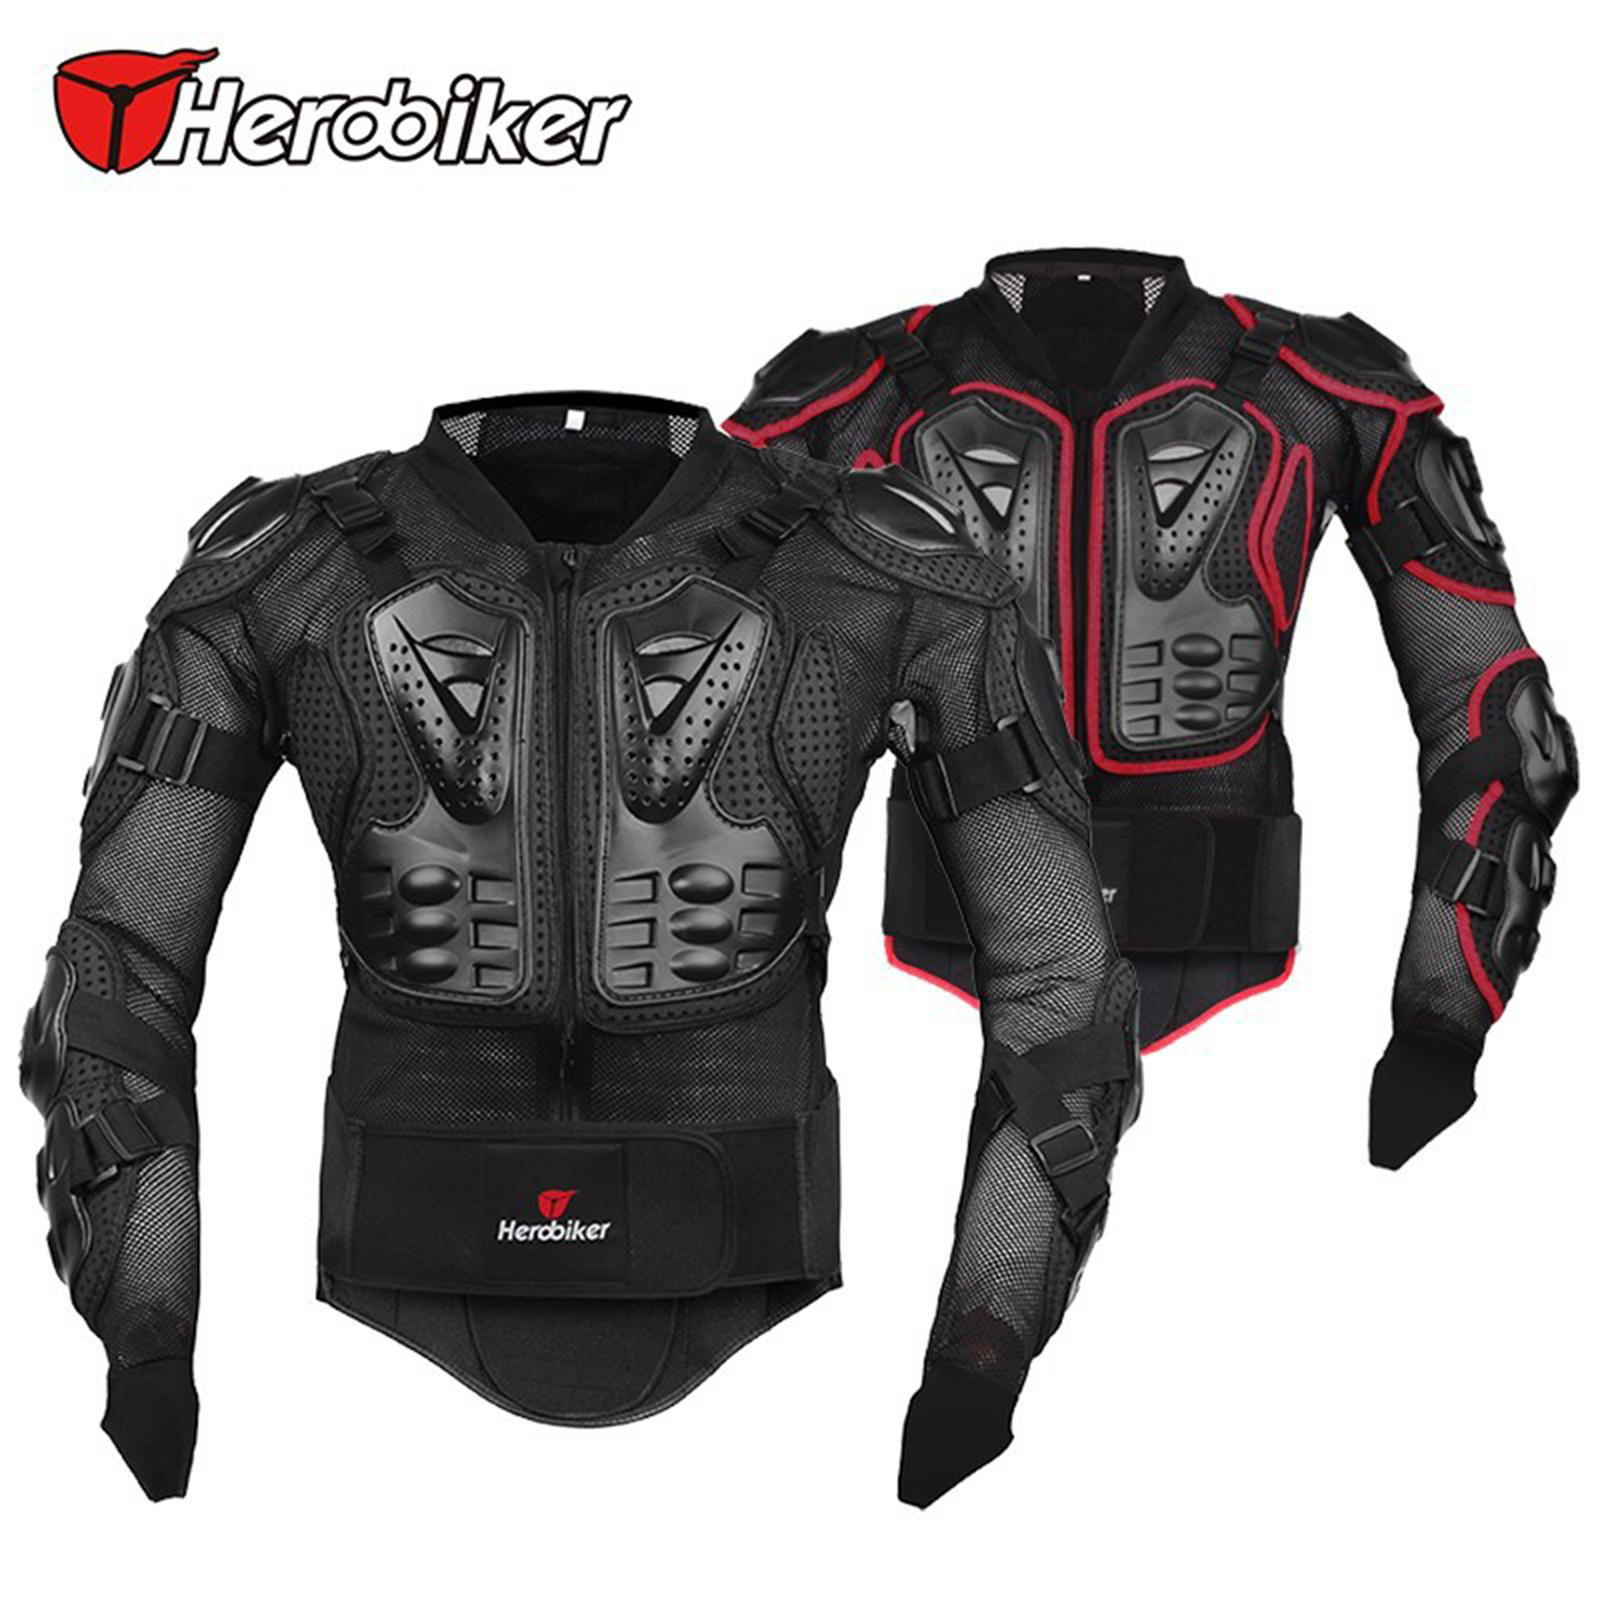 Motorcycle Jacket Men Full Body Motorcycle Armor Motocross Racing Protective Gear Motorcycle Protection Size S-3XL недорго, оригинальная цена